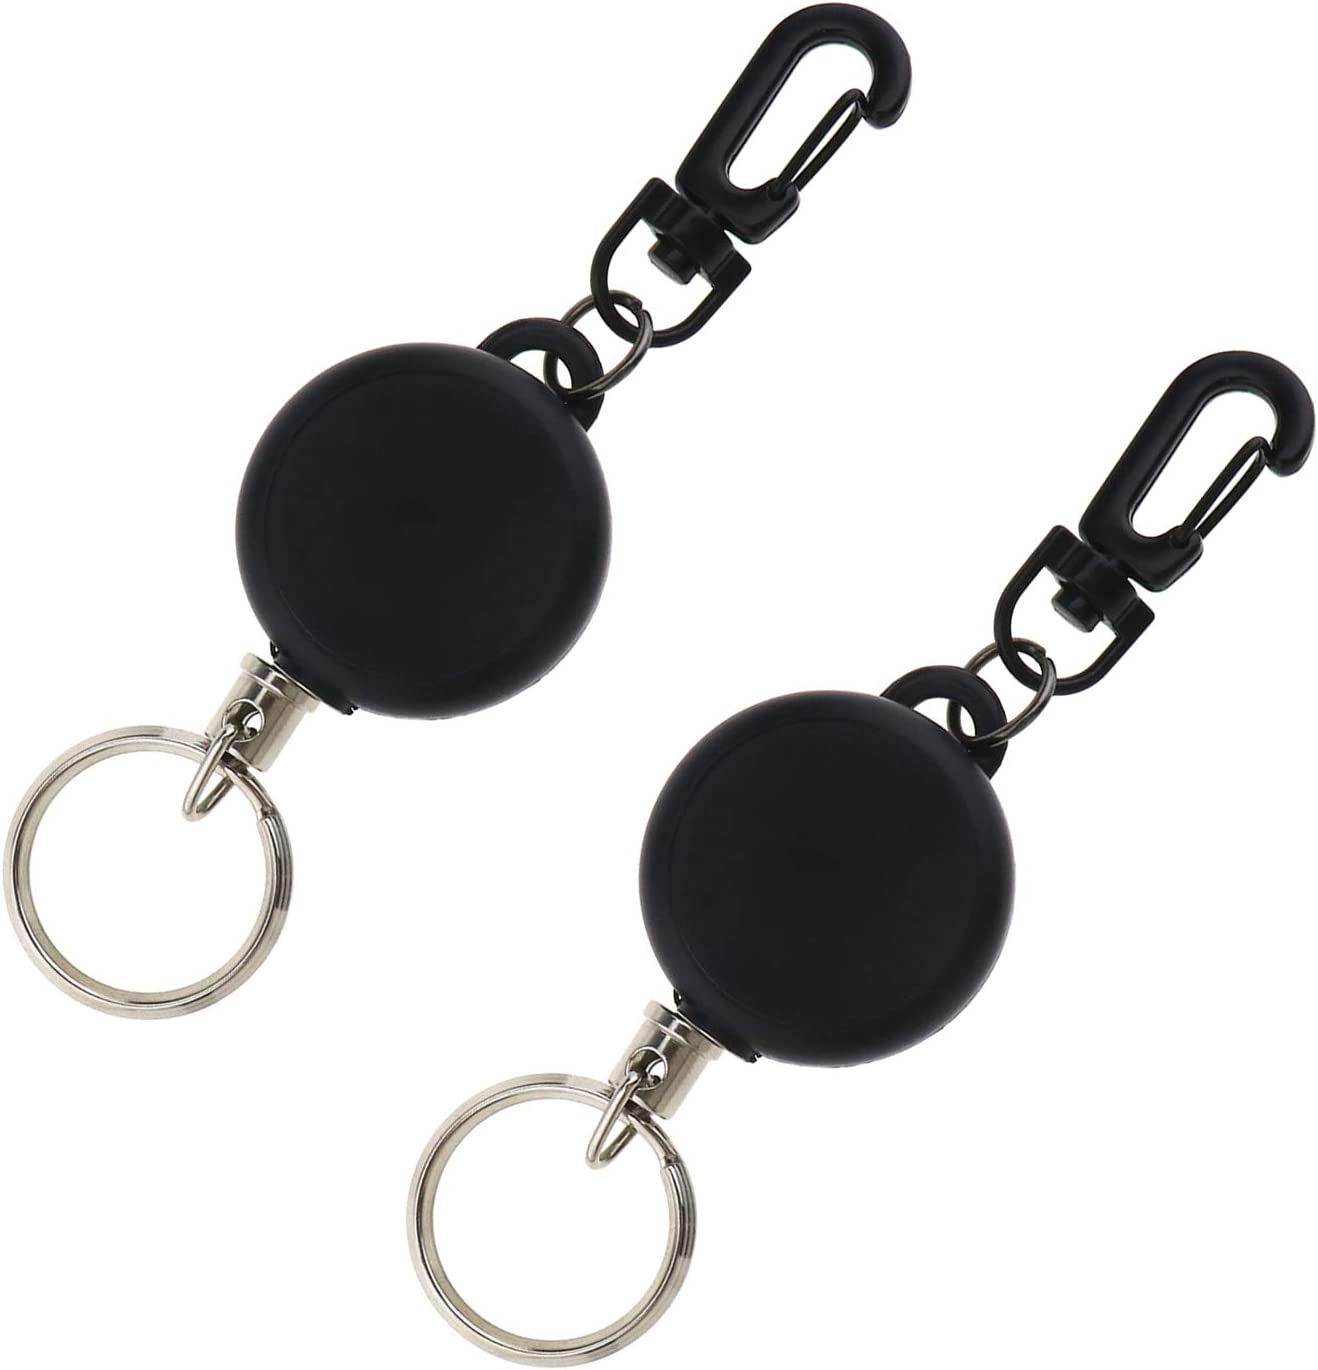 1x Retractable Metal Pull Chain Reel ID Card Keychain Holder Recoil Belt Clip